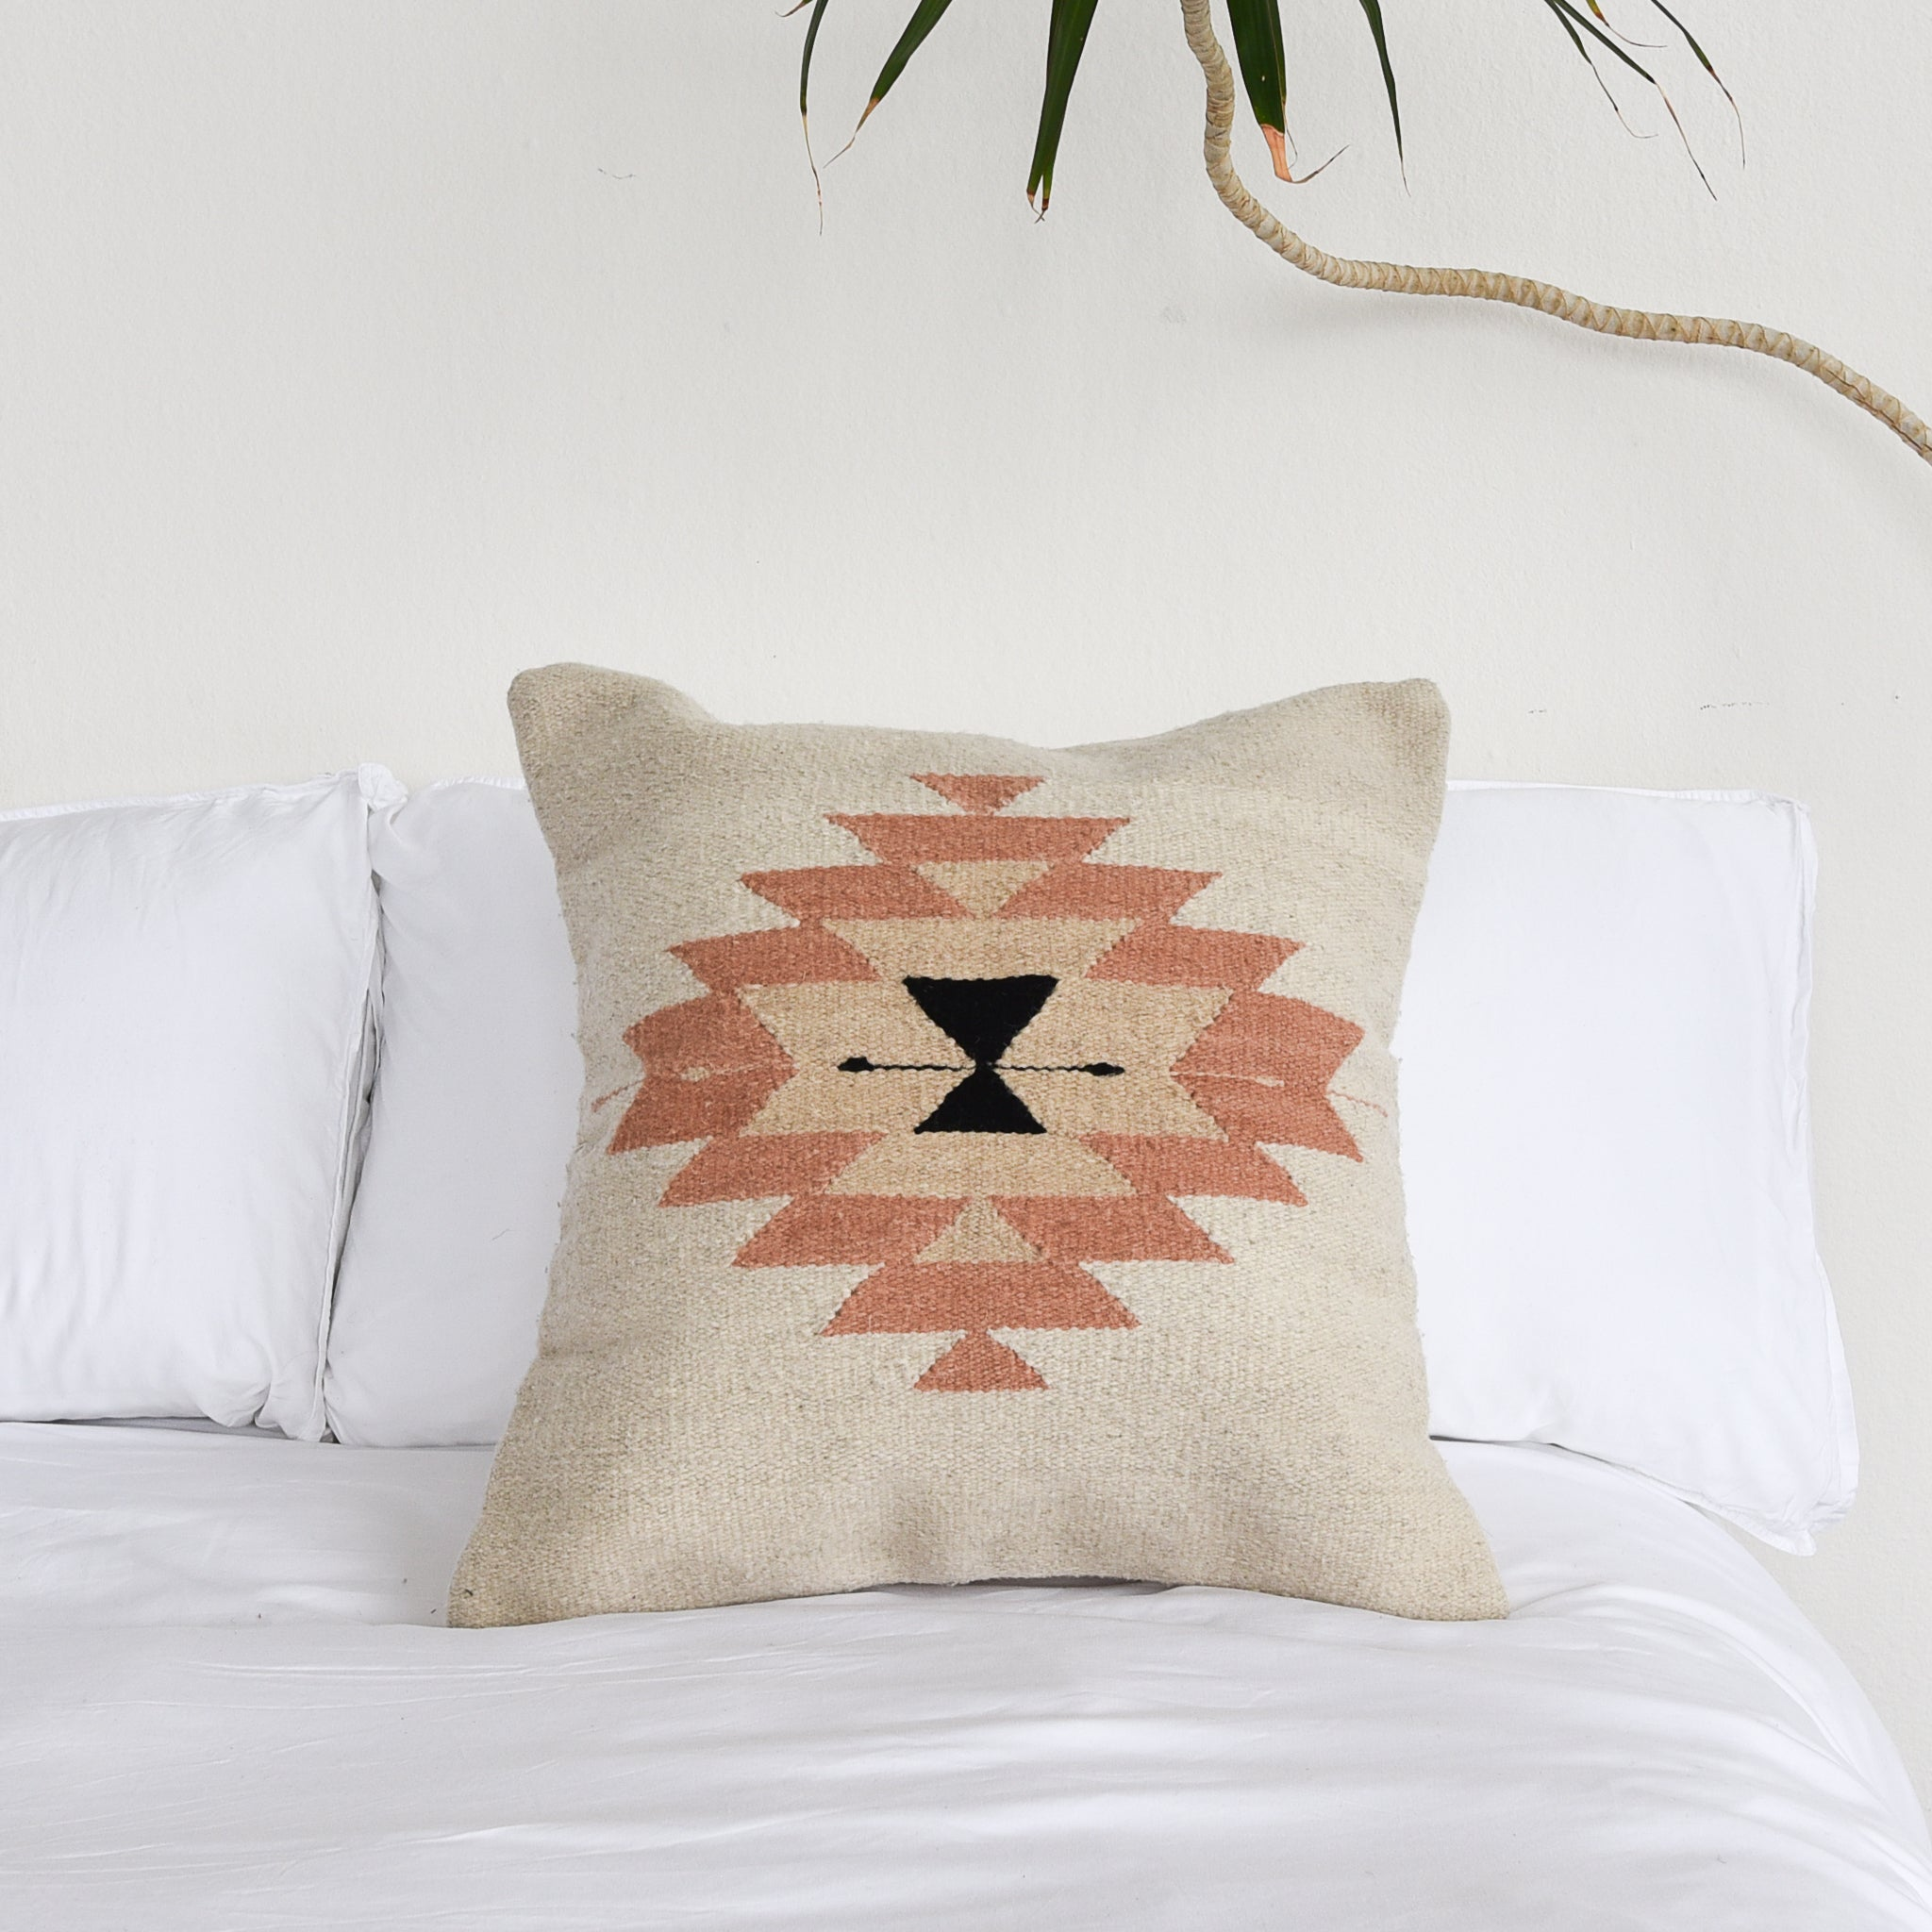 A wool throw pillow featuring Oaxaca Zapotec-inspired design on a white bed.